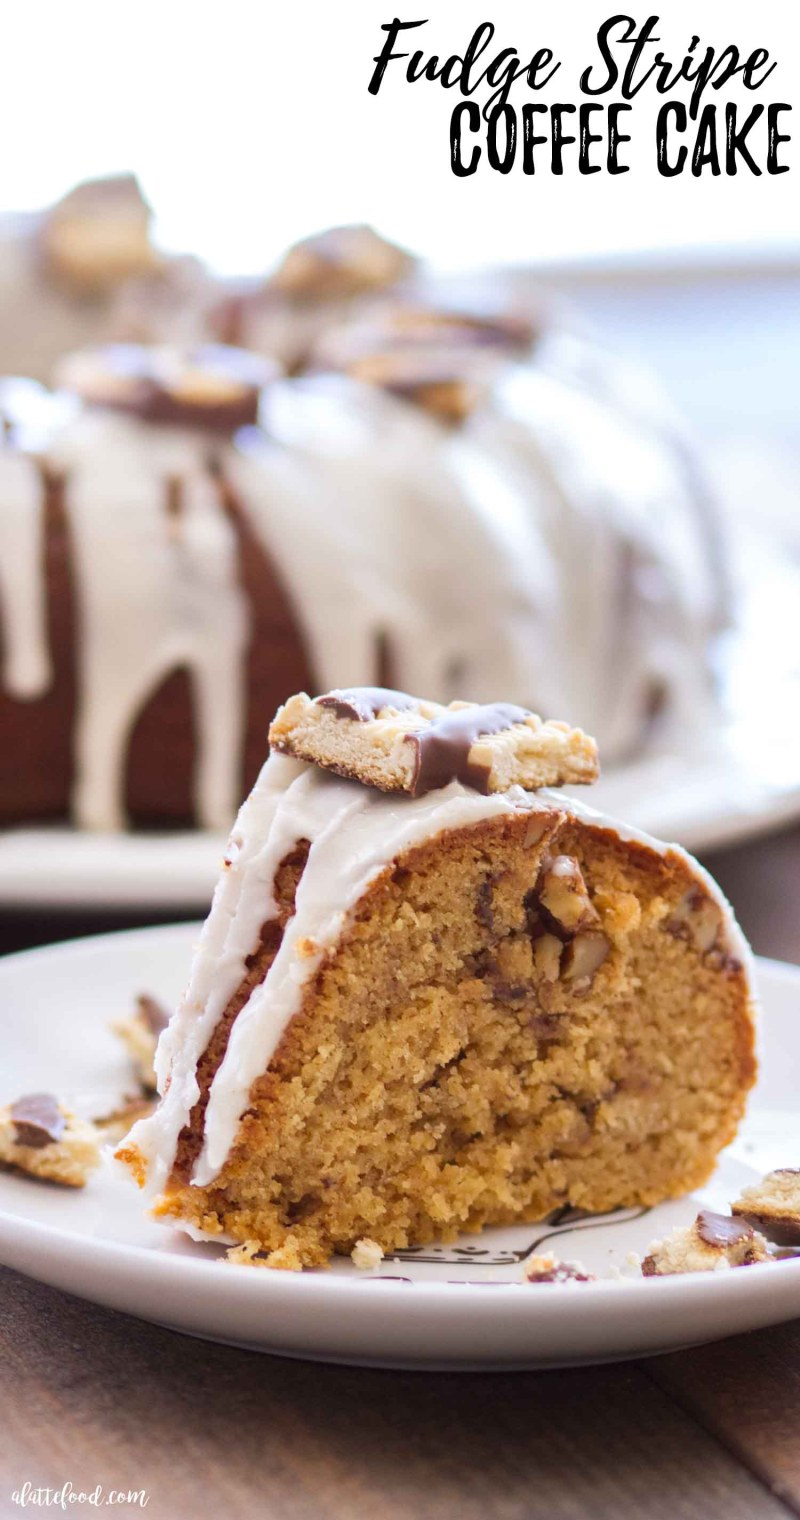 Homemade Fudge Stripe Coffee Cake Recipe Sliced with a Homemade Vanilla Glaze